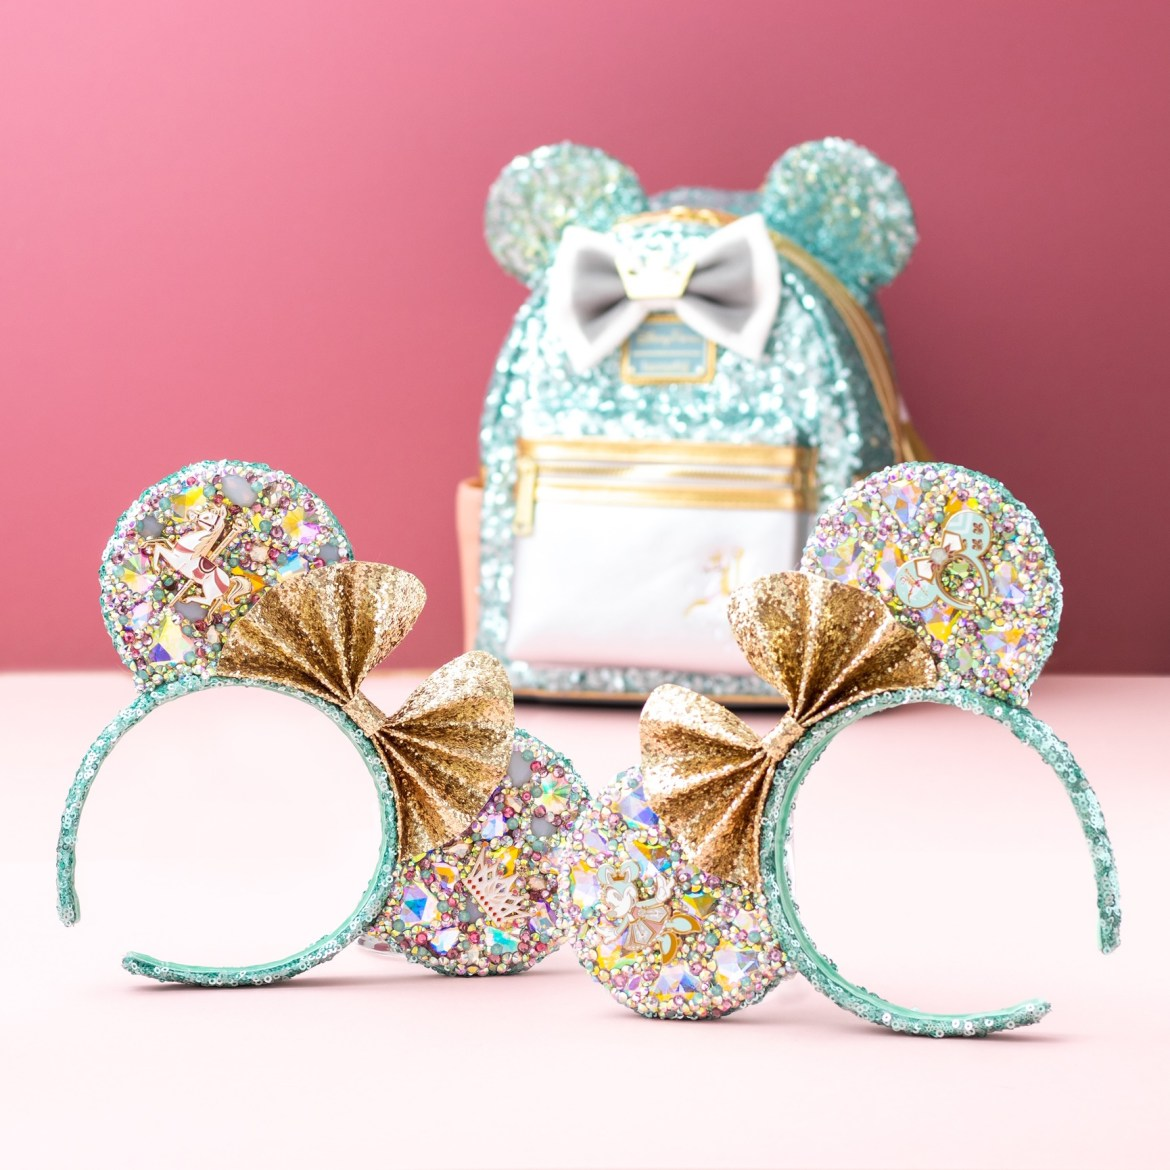 These Swarovski Crystal Minnie Ears Are A Dream Come True!